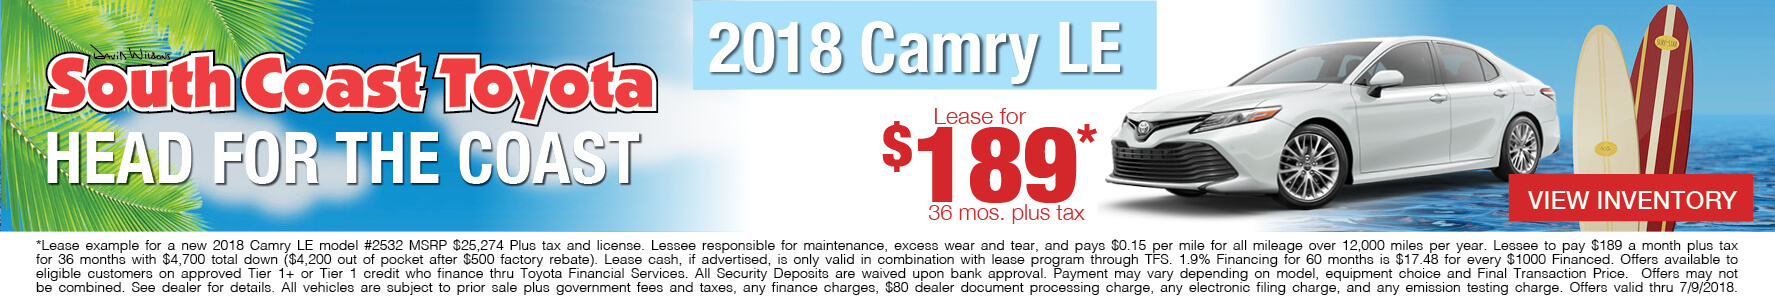 Toyota Camry $189 Lease